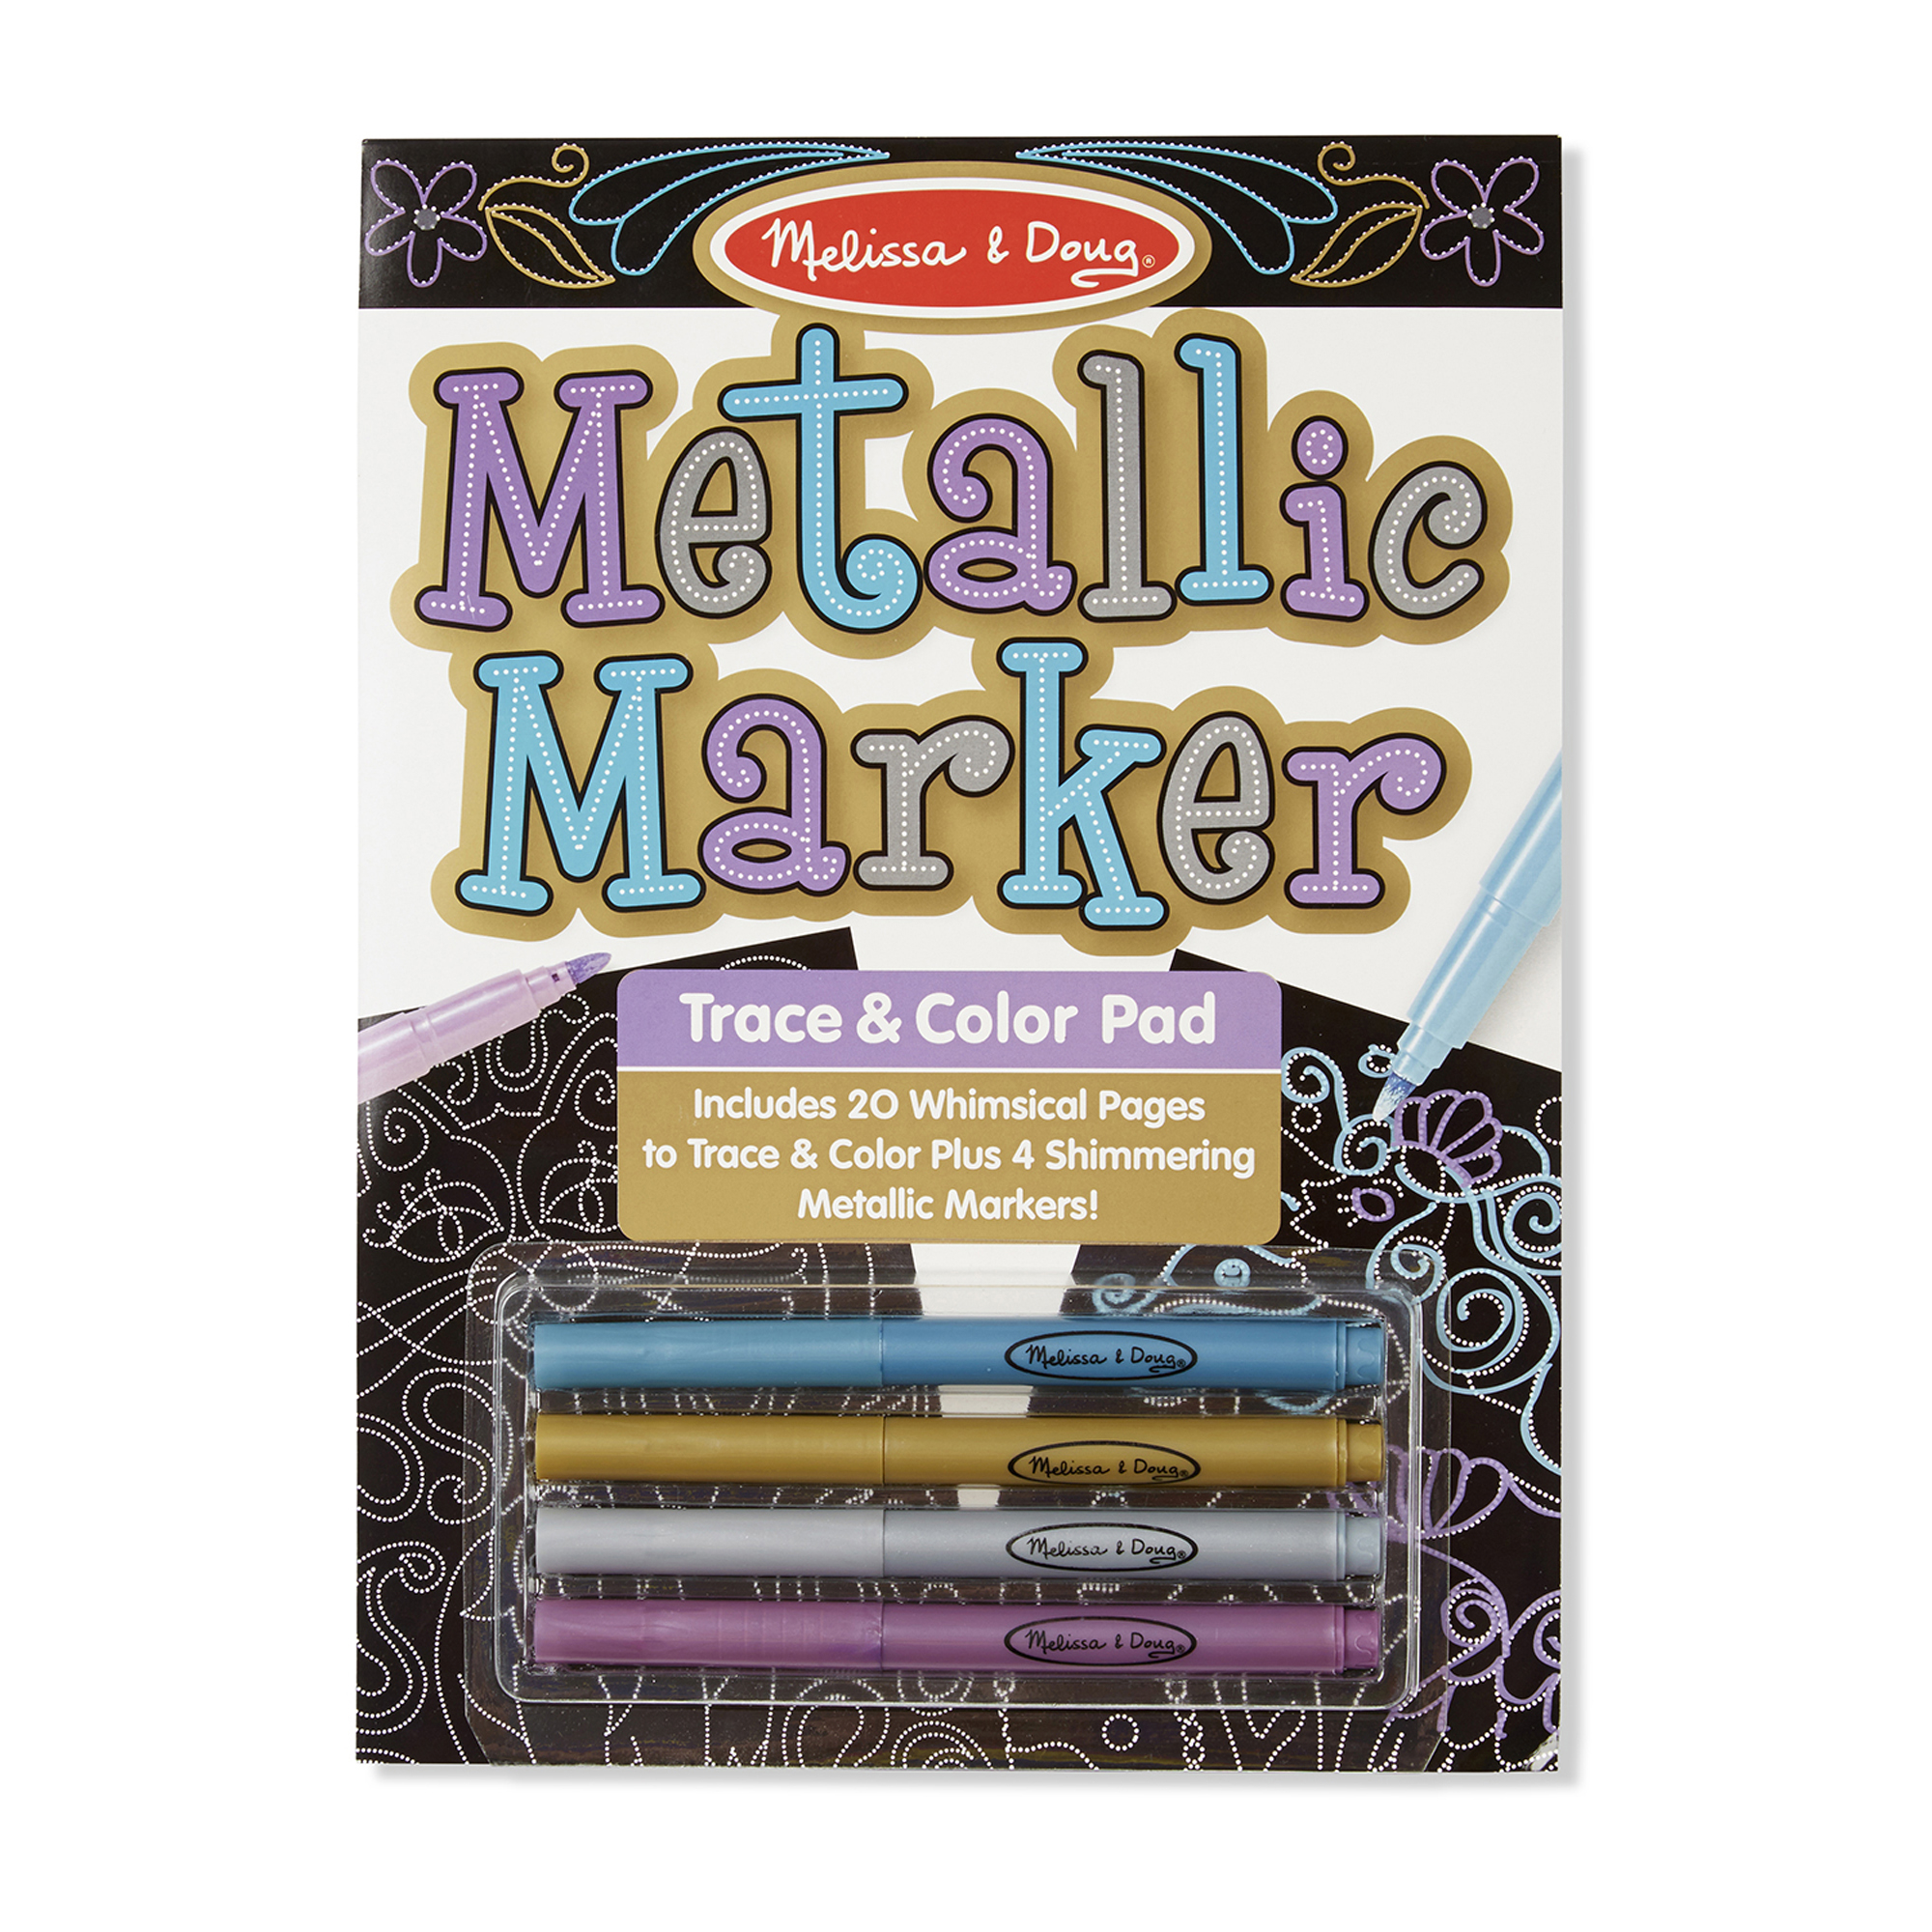 Metallic Marker Trace  Color Pad